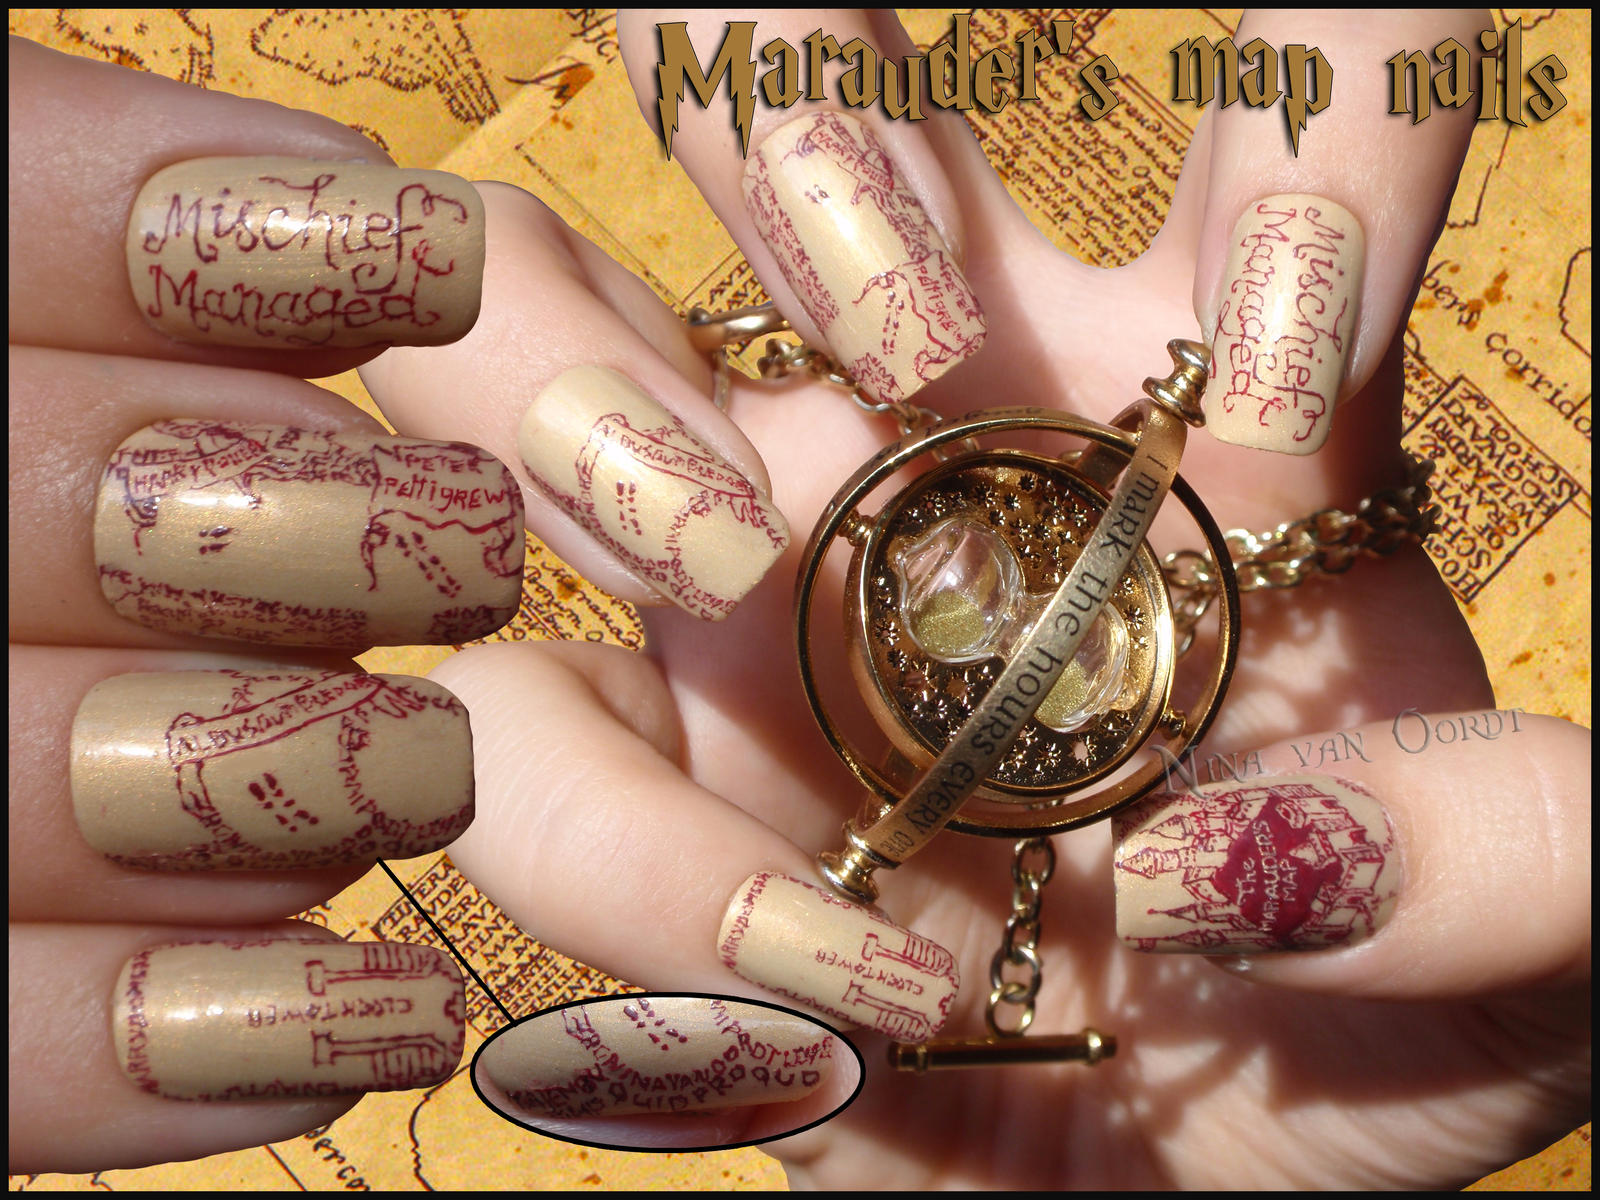 Marauder's Map Nails by Ninails